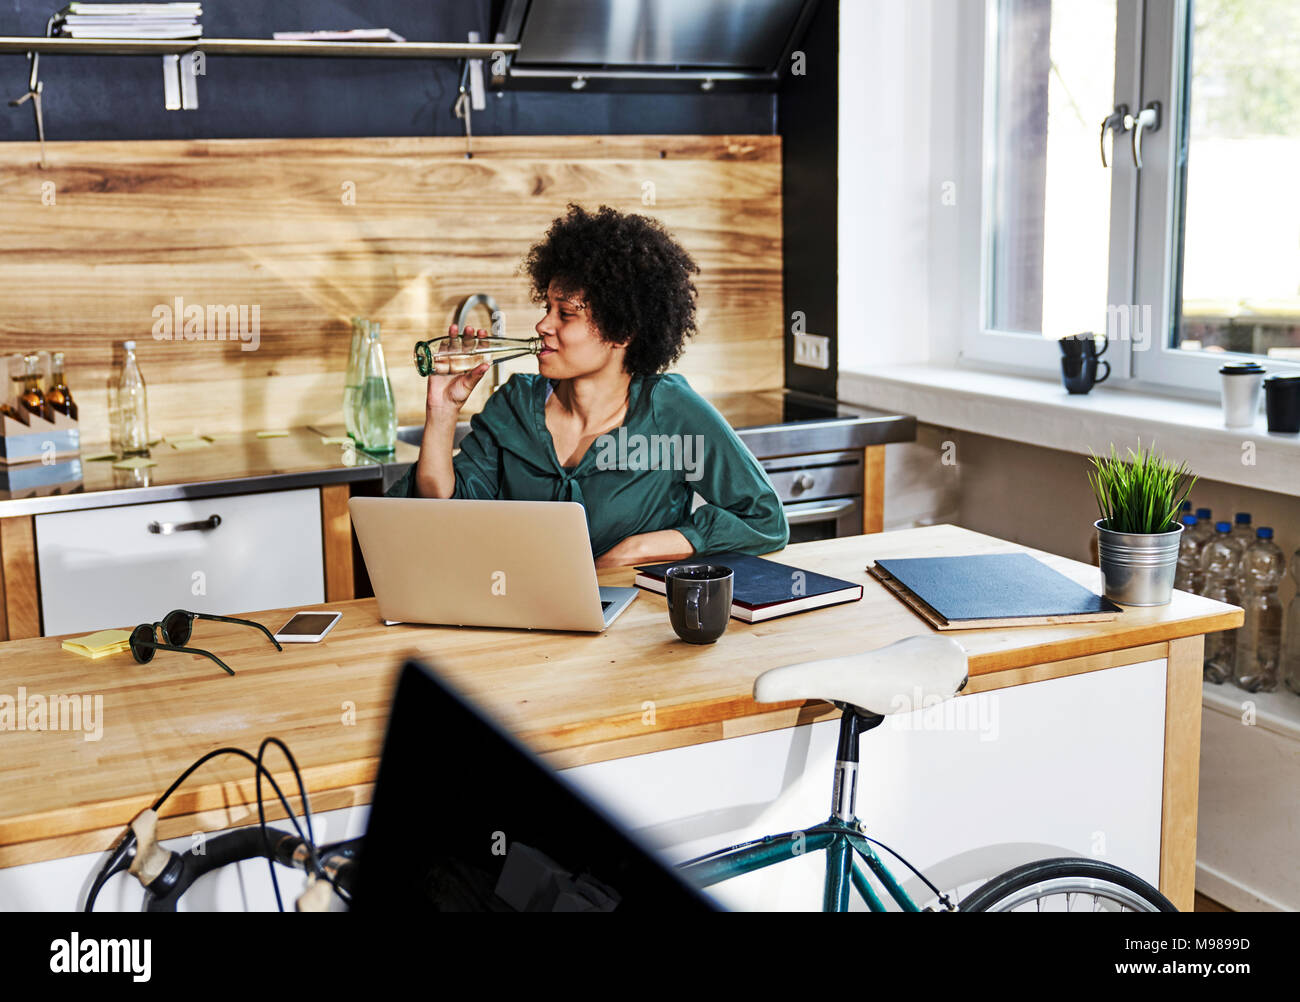 Young woman using laptop on kitchen counter - Stock Image